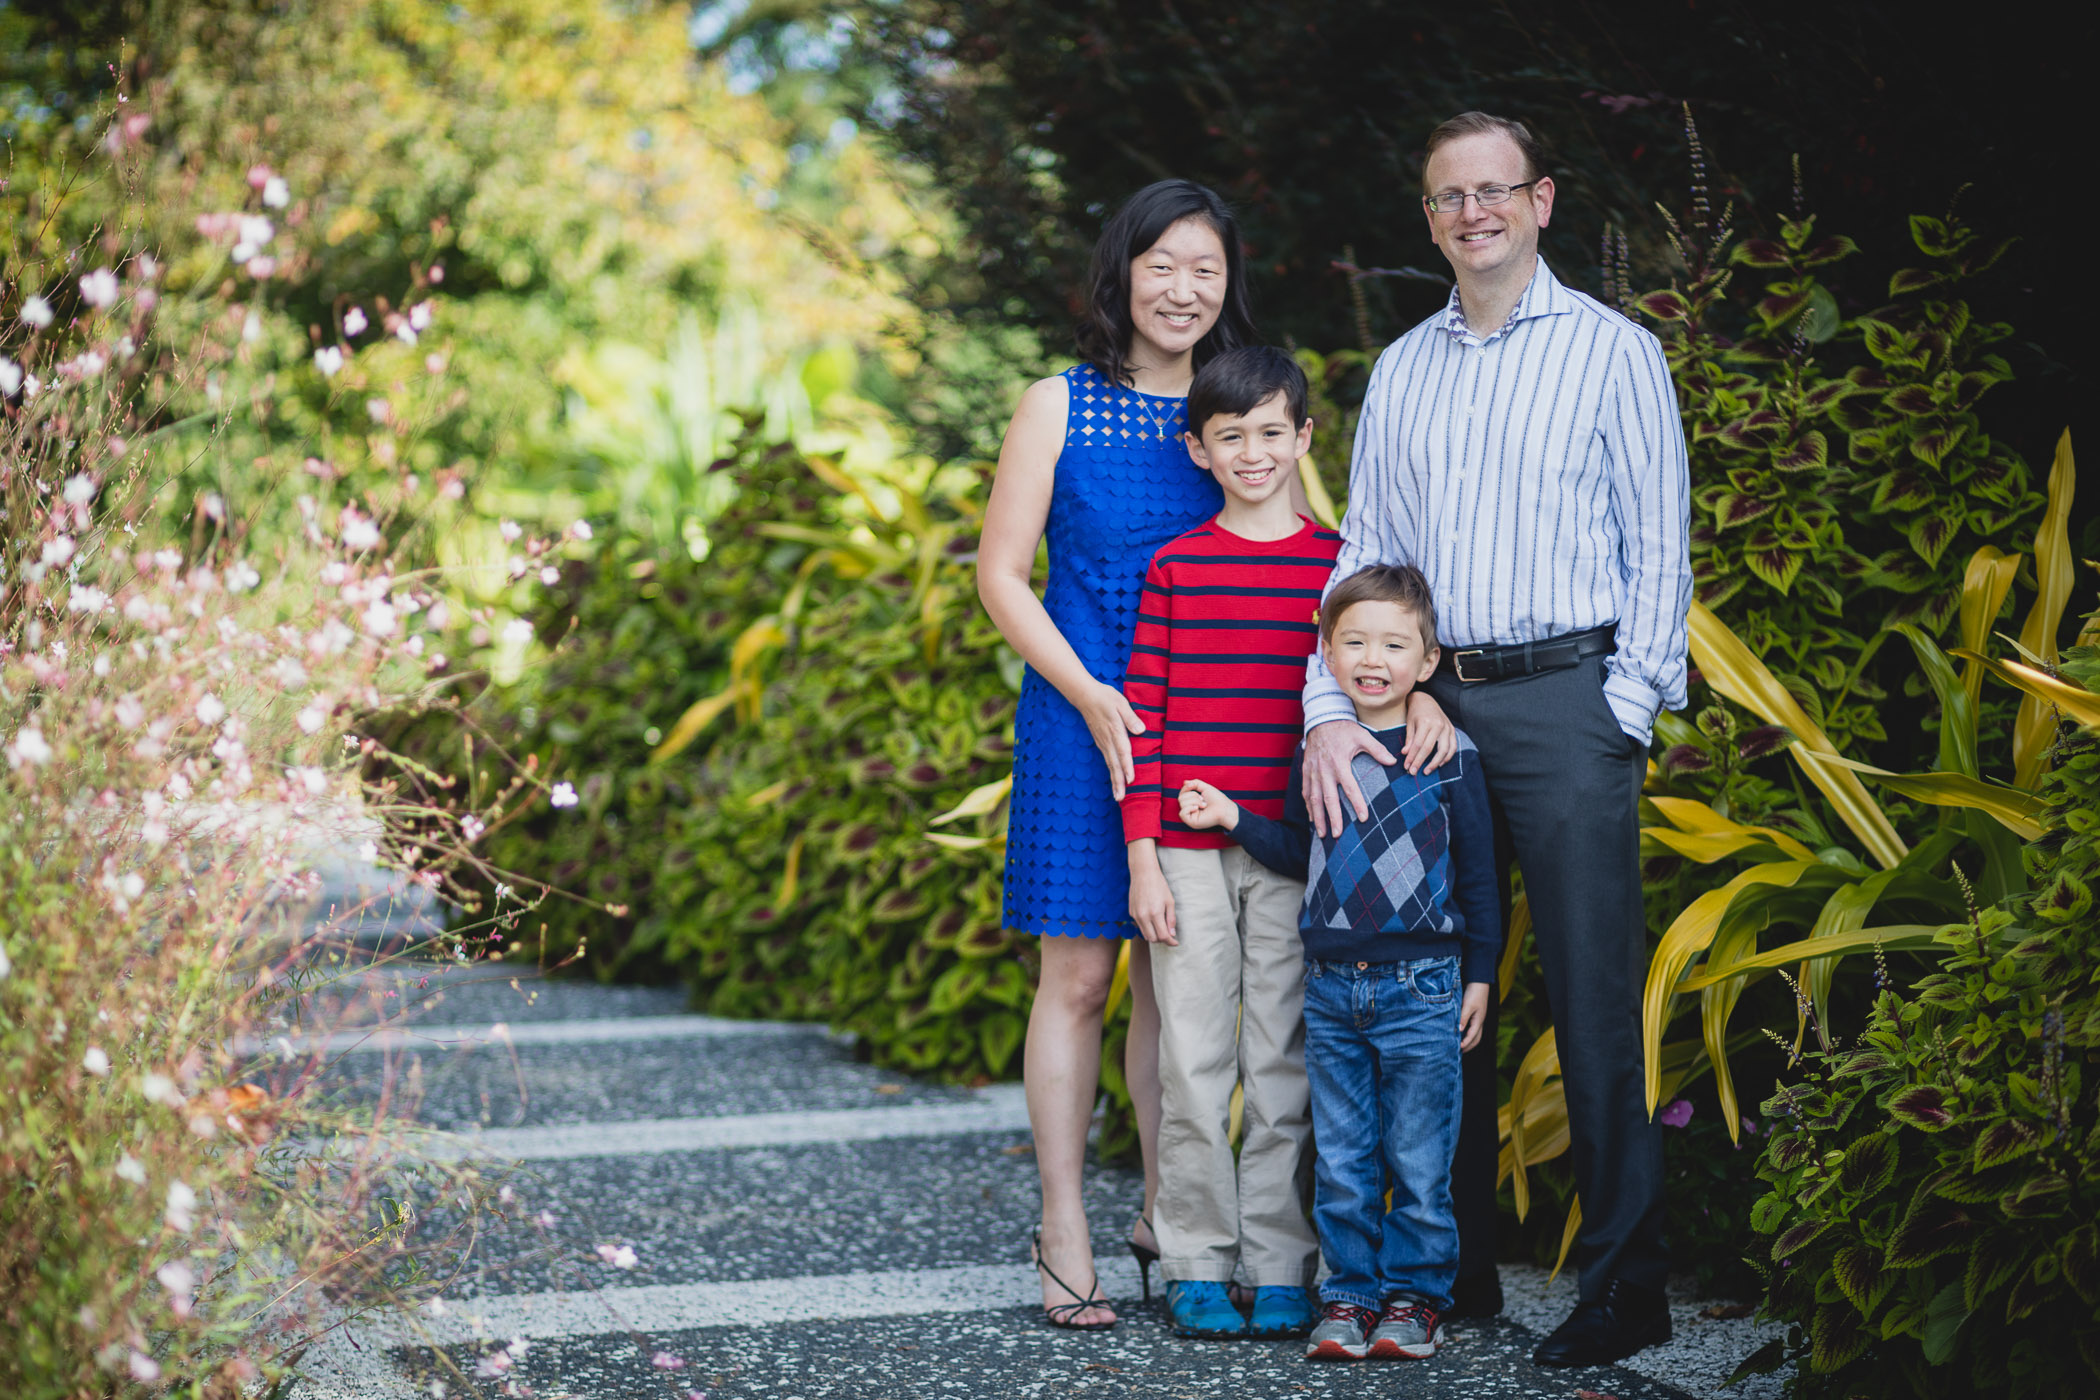 This Family Portrait Session in the National Arboretum 05